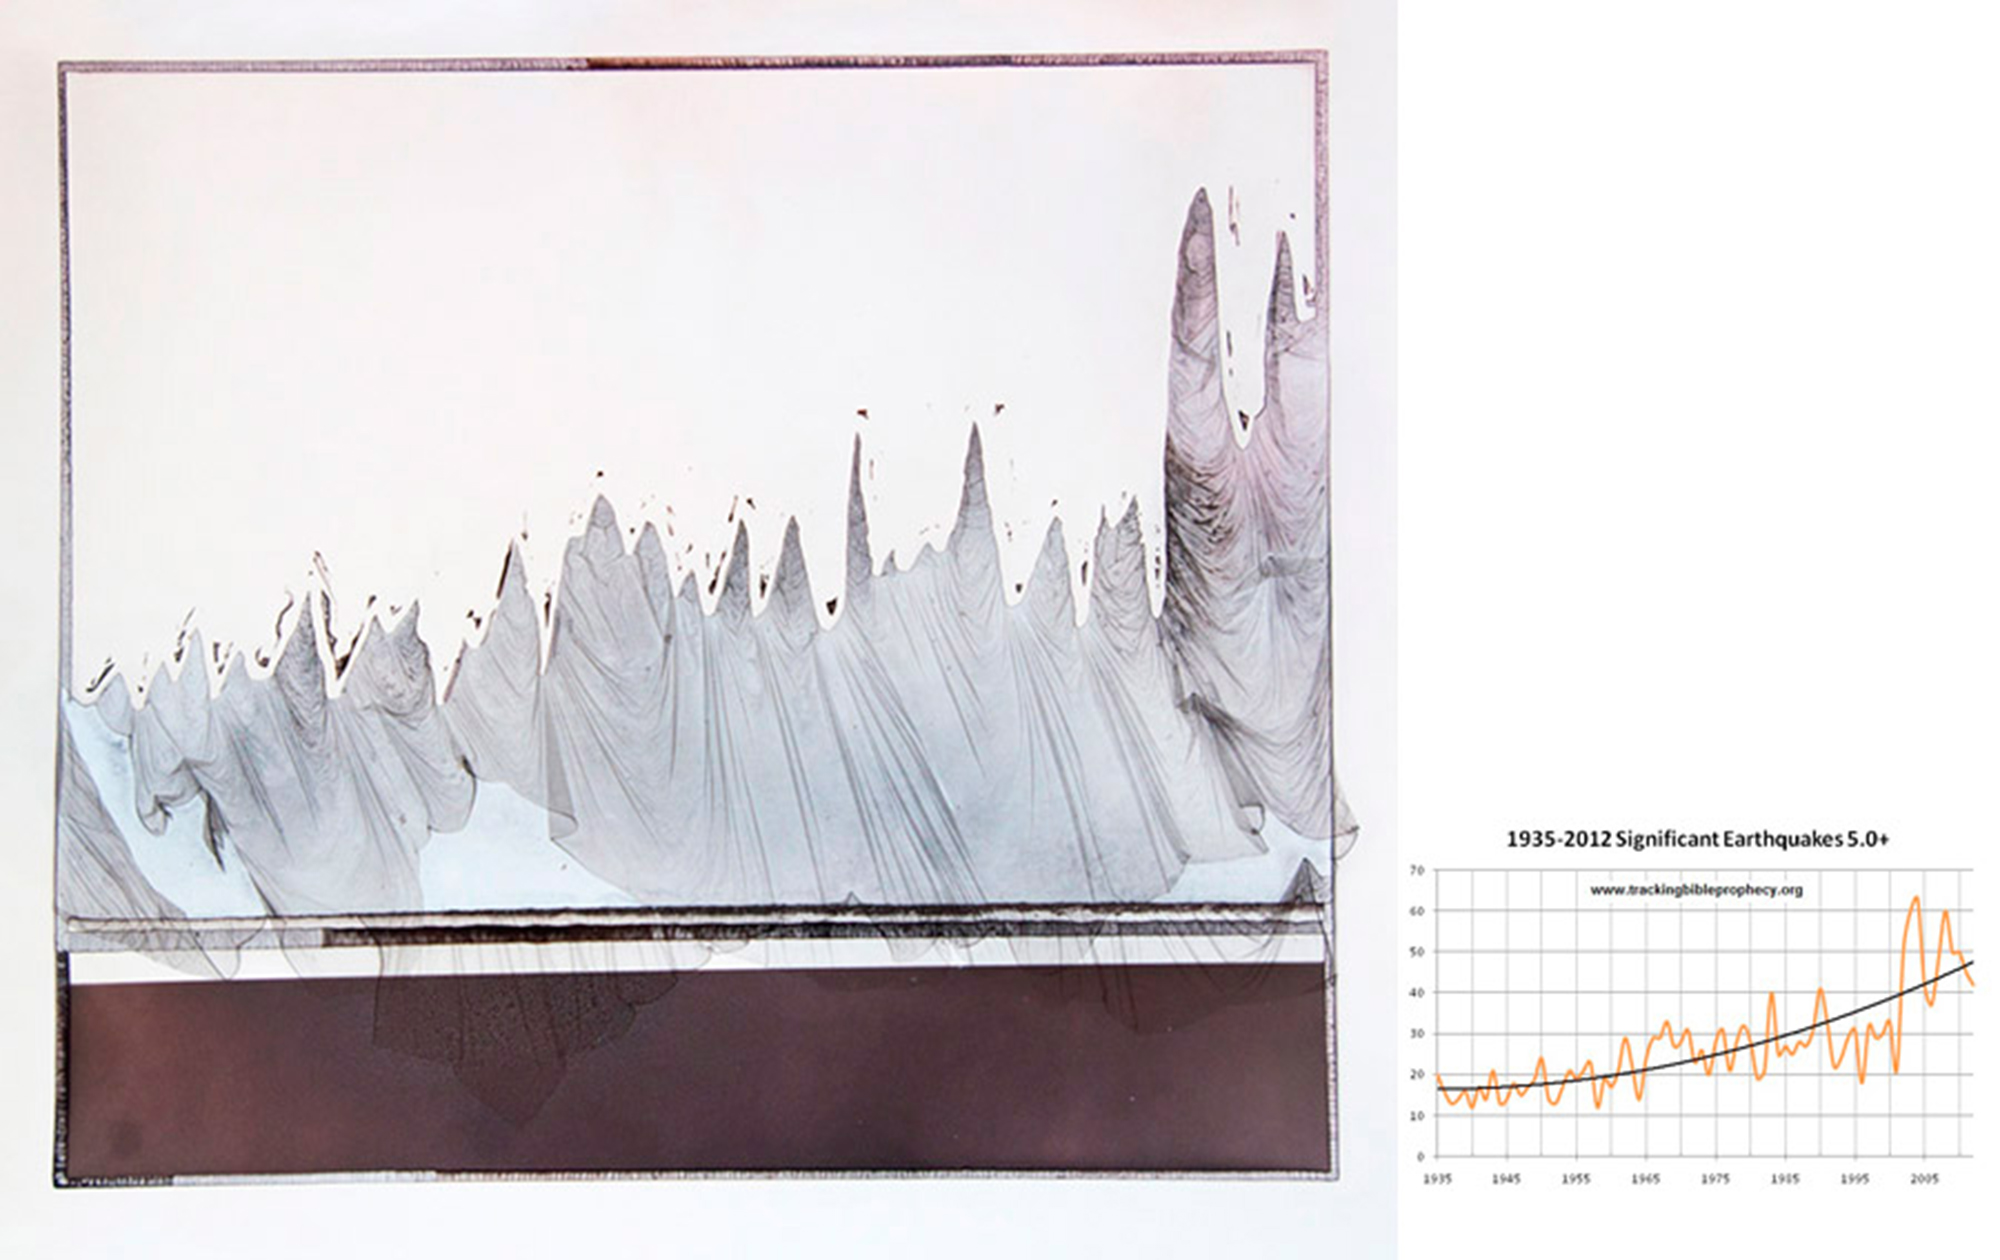 9 - mdli-11 - 1935-2012 SIGNIFICANT EARTHQUAKES 5.0+ - from the series MOUNTAINS OF UNCERTAINTY.jpg